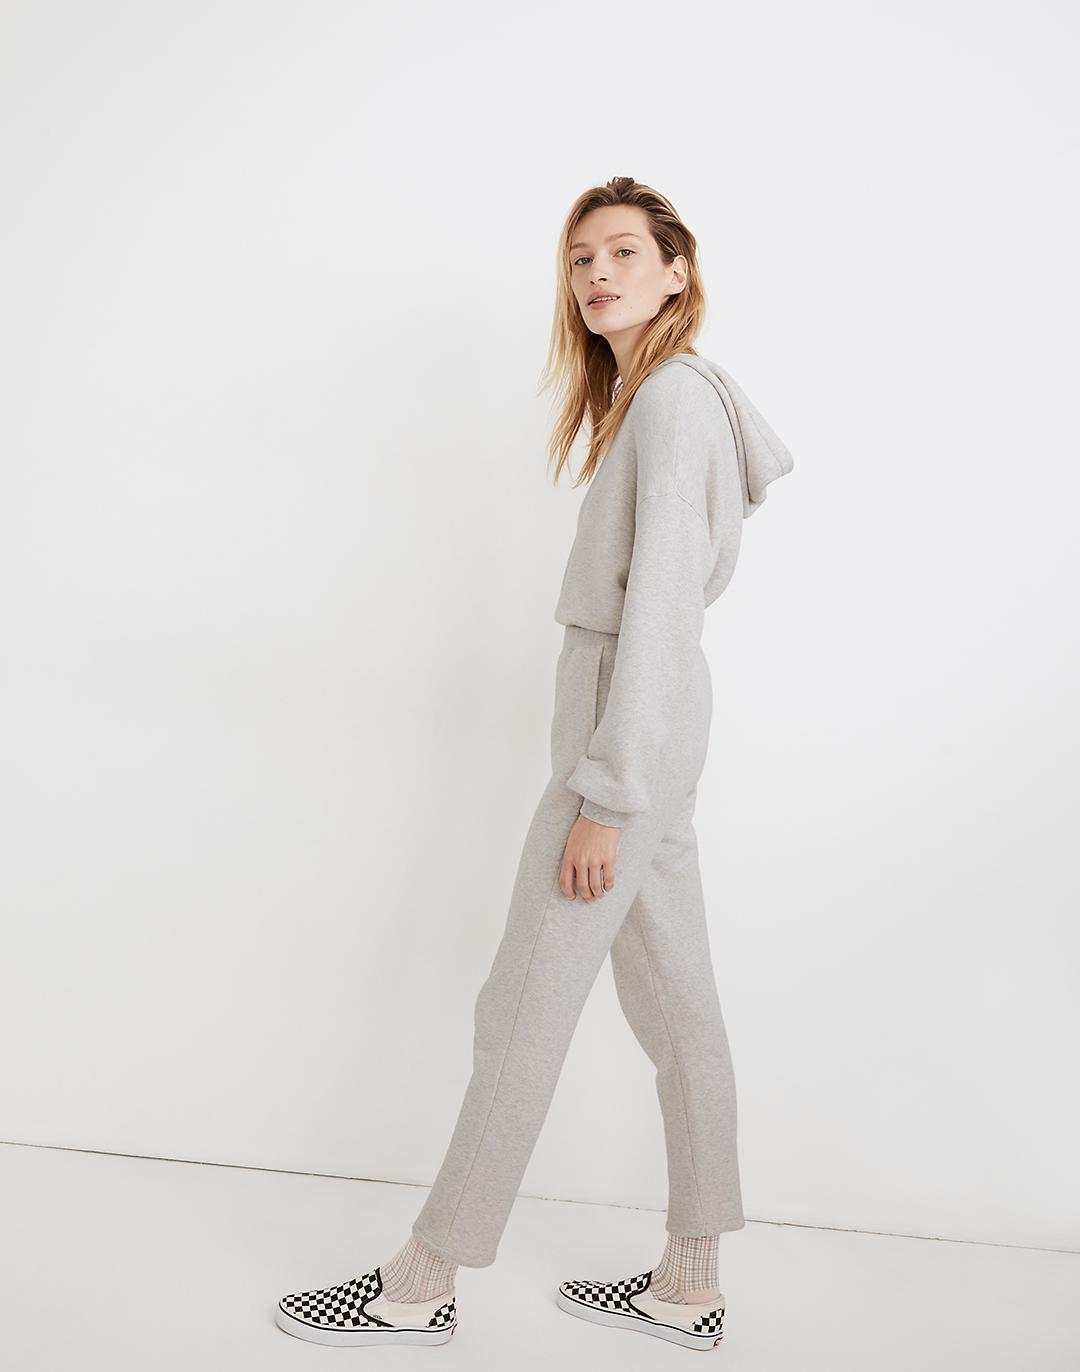 MWL Airyterry Tapered Sweatpants: Stitched-Pocket Edition 1